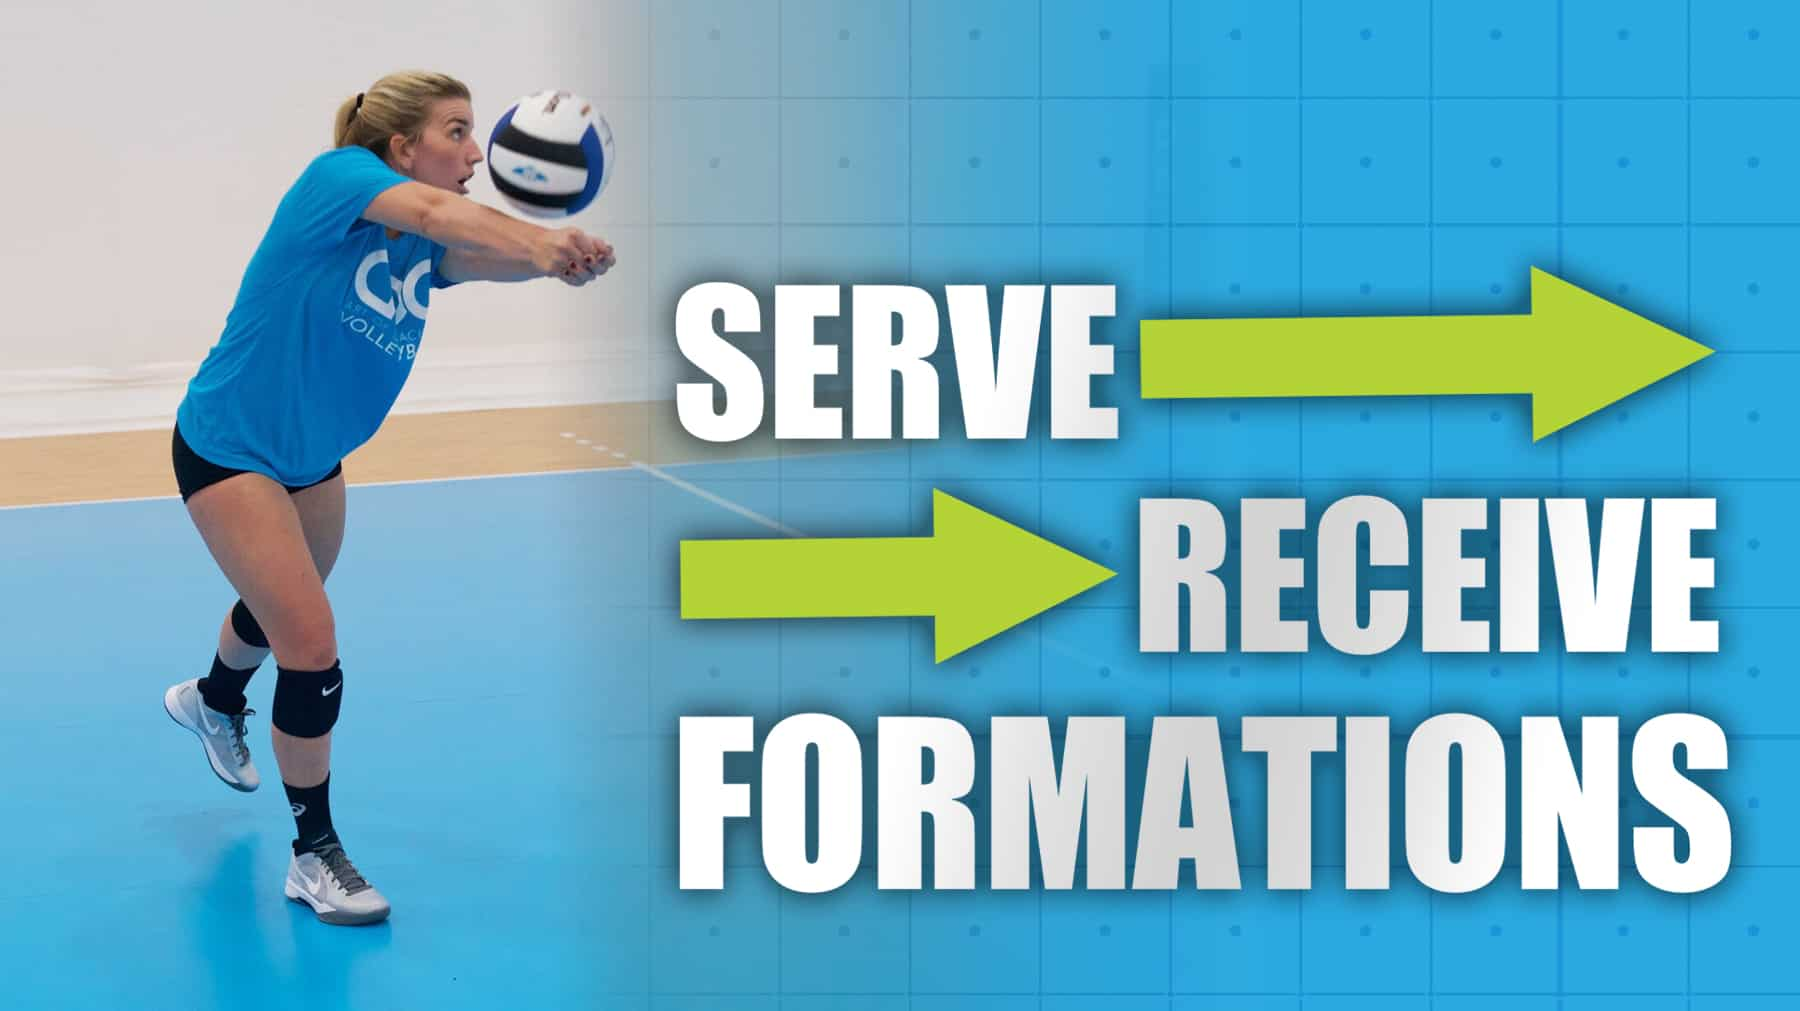 Training different serve-receive formations to assist in game planning